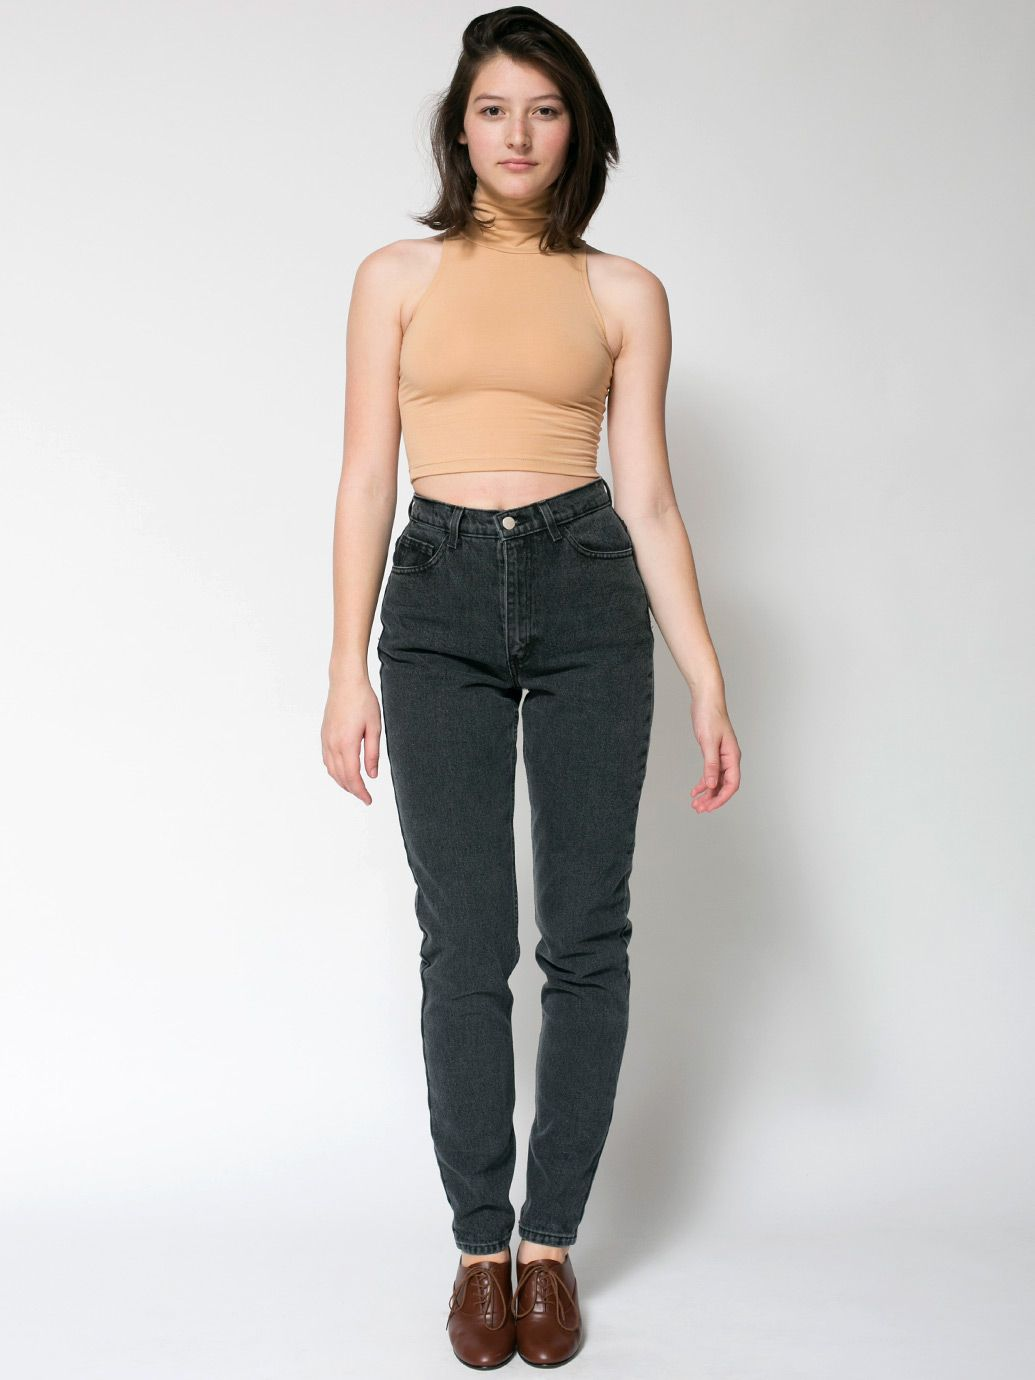 Look stunning on your next date or night out - Shop Stone Wash High Waist Skinny Jeans on Wet Seal Higher Quality The Latest Fashion Great Deals Easy Return Policy Free Shipping on orders over $